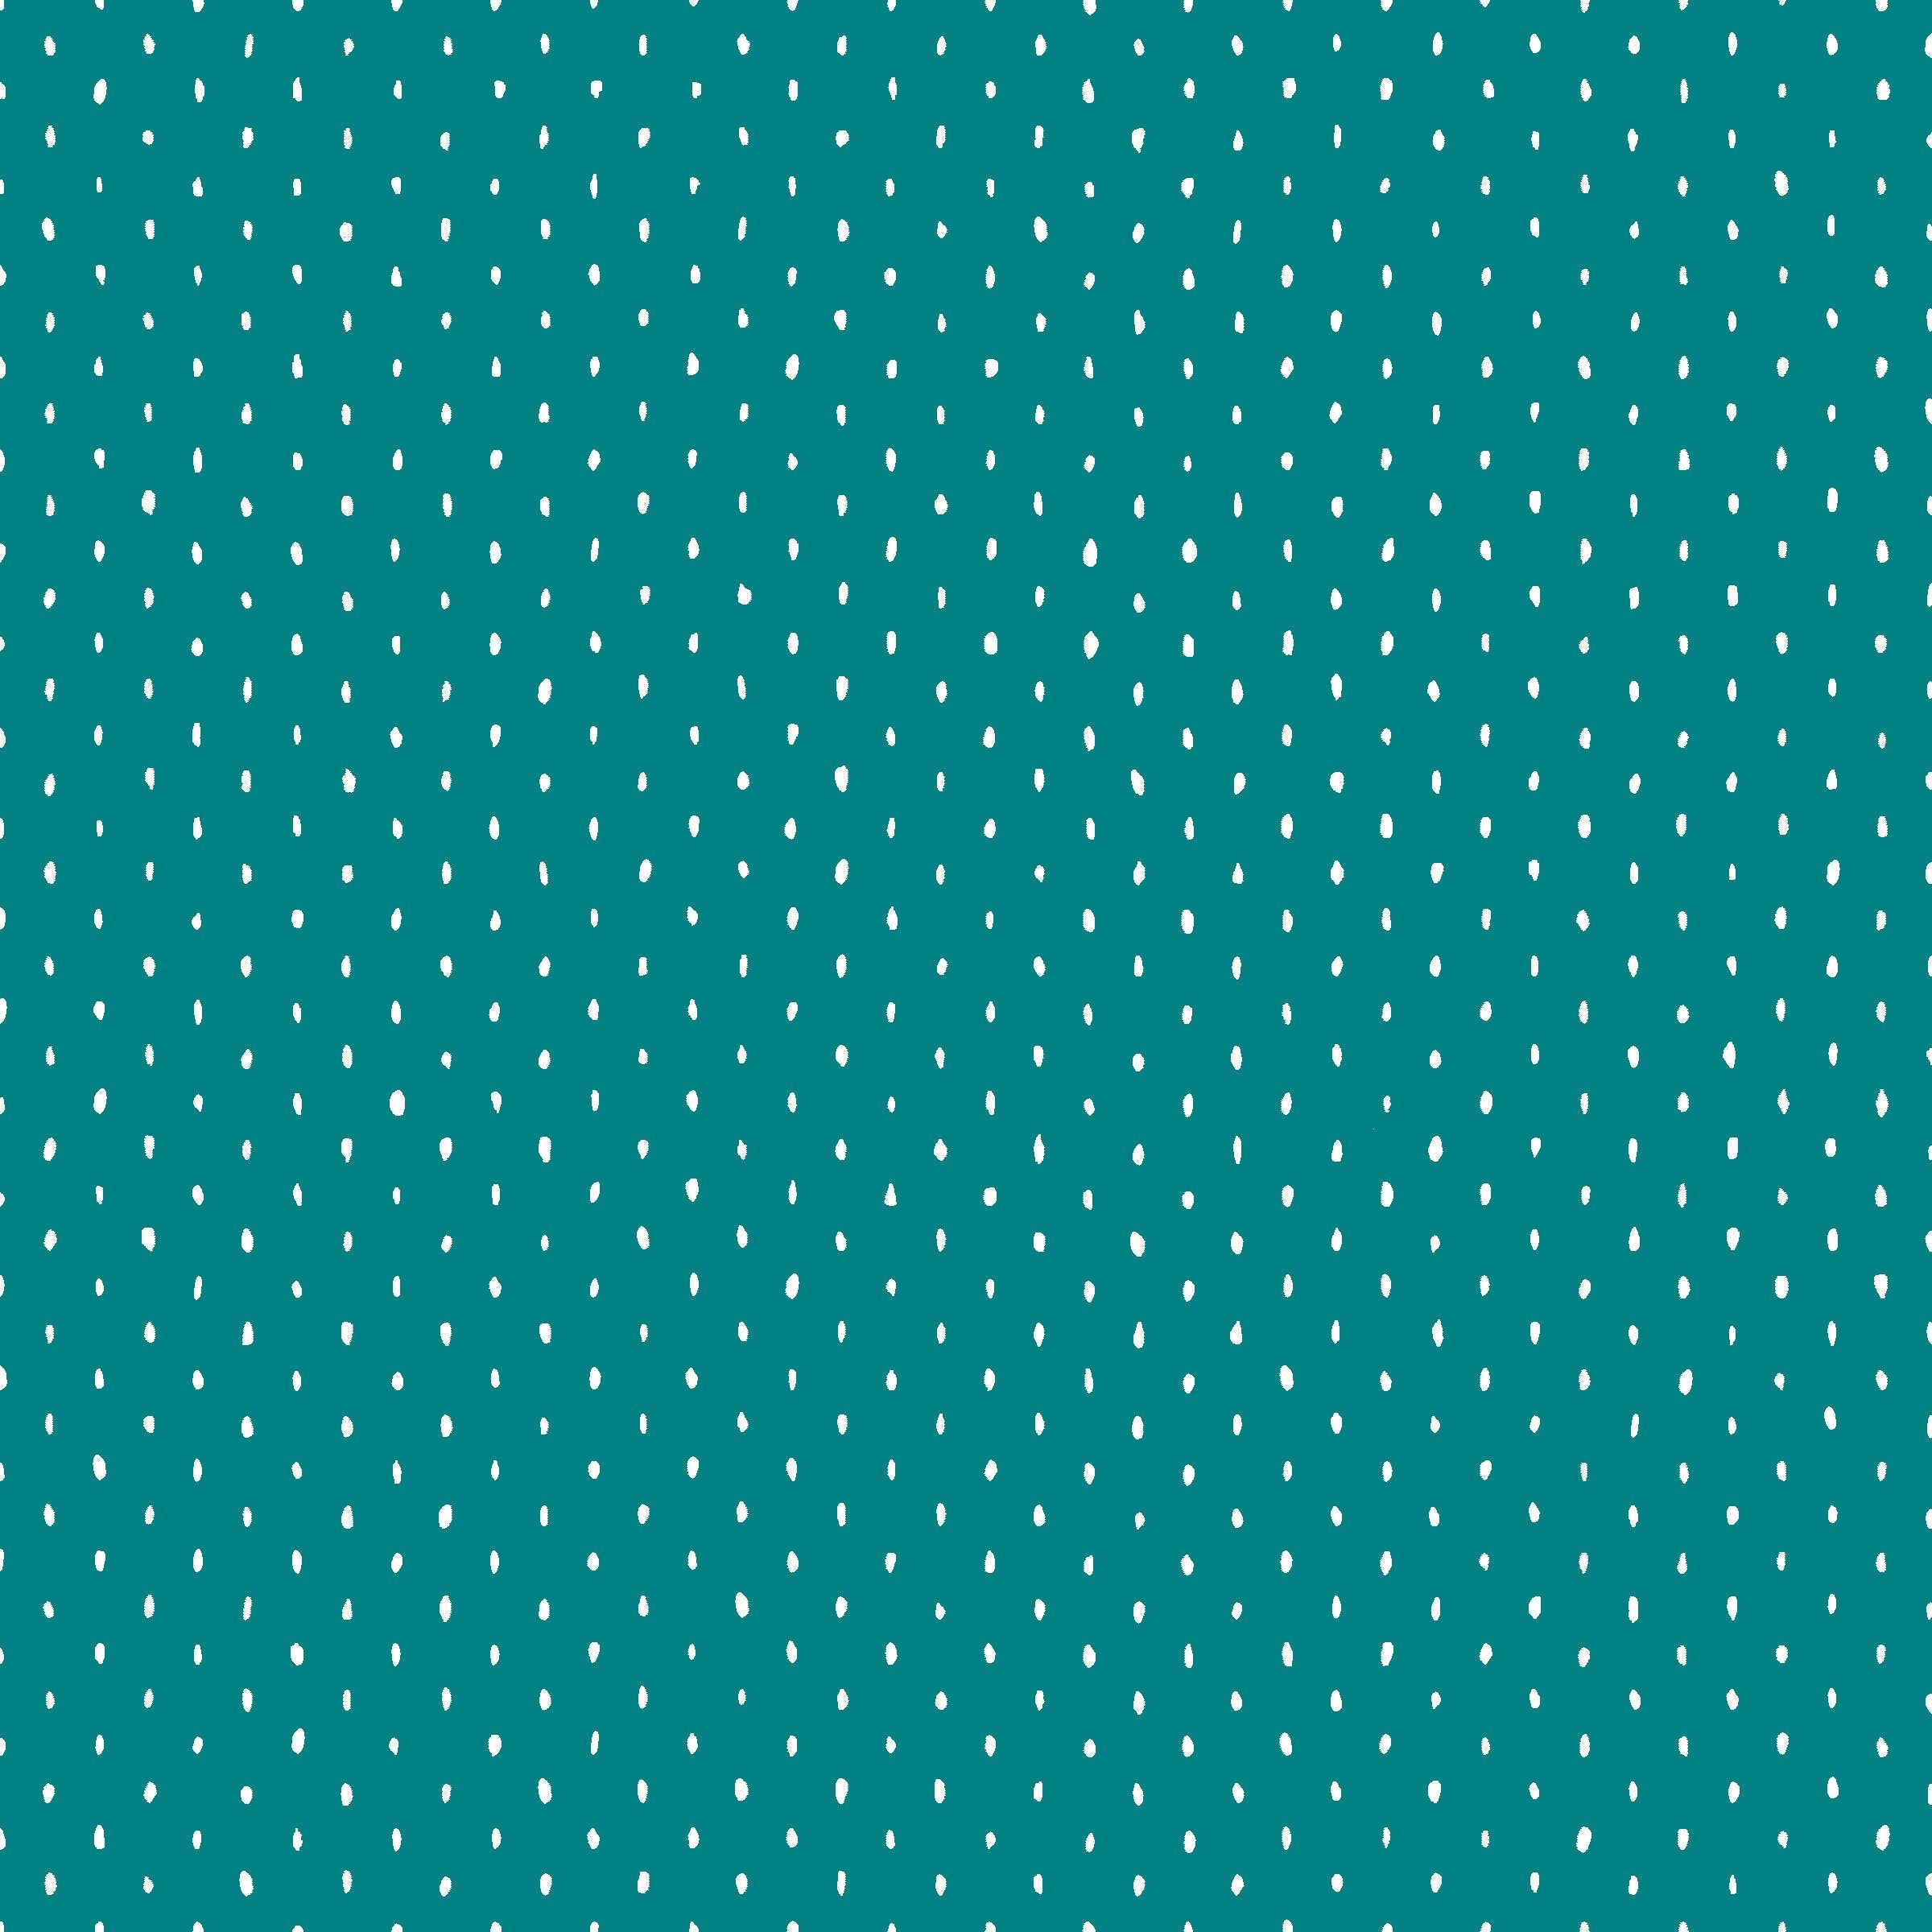 C+S Basics: Stitch & Repeat in Teal